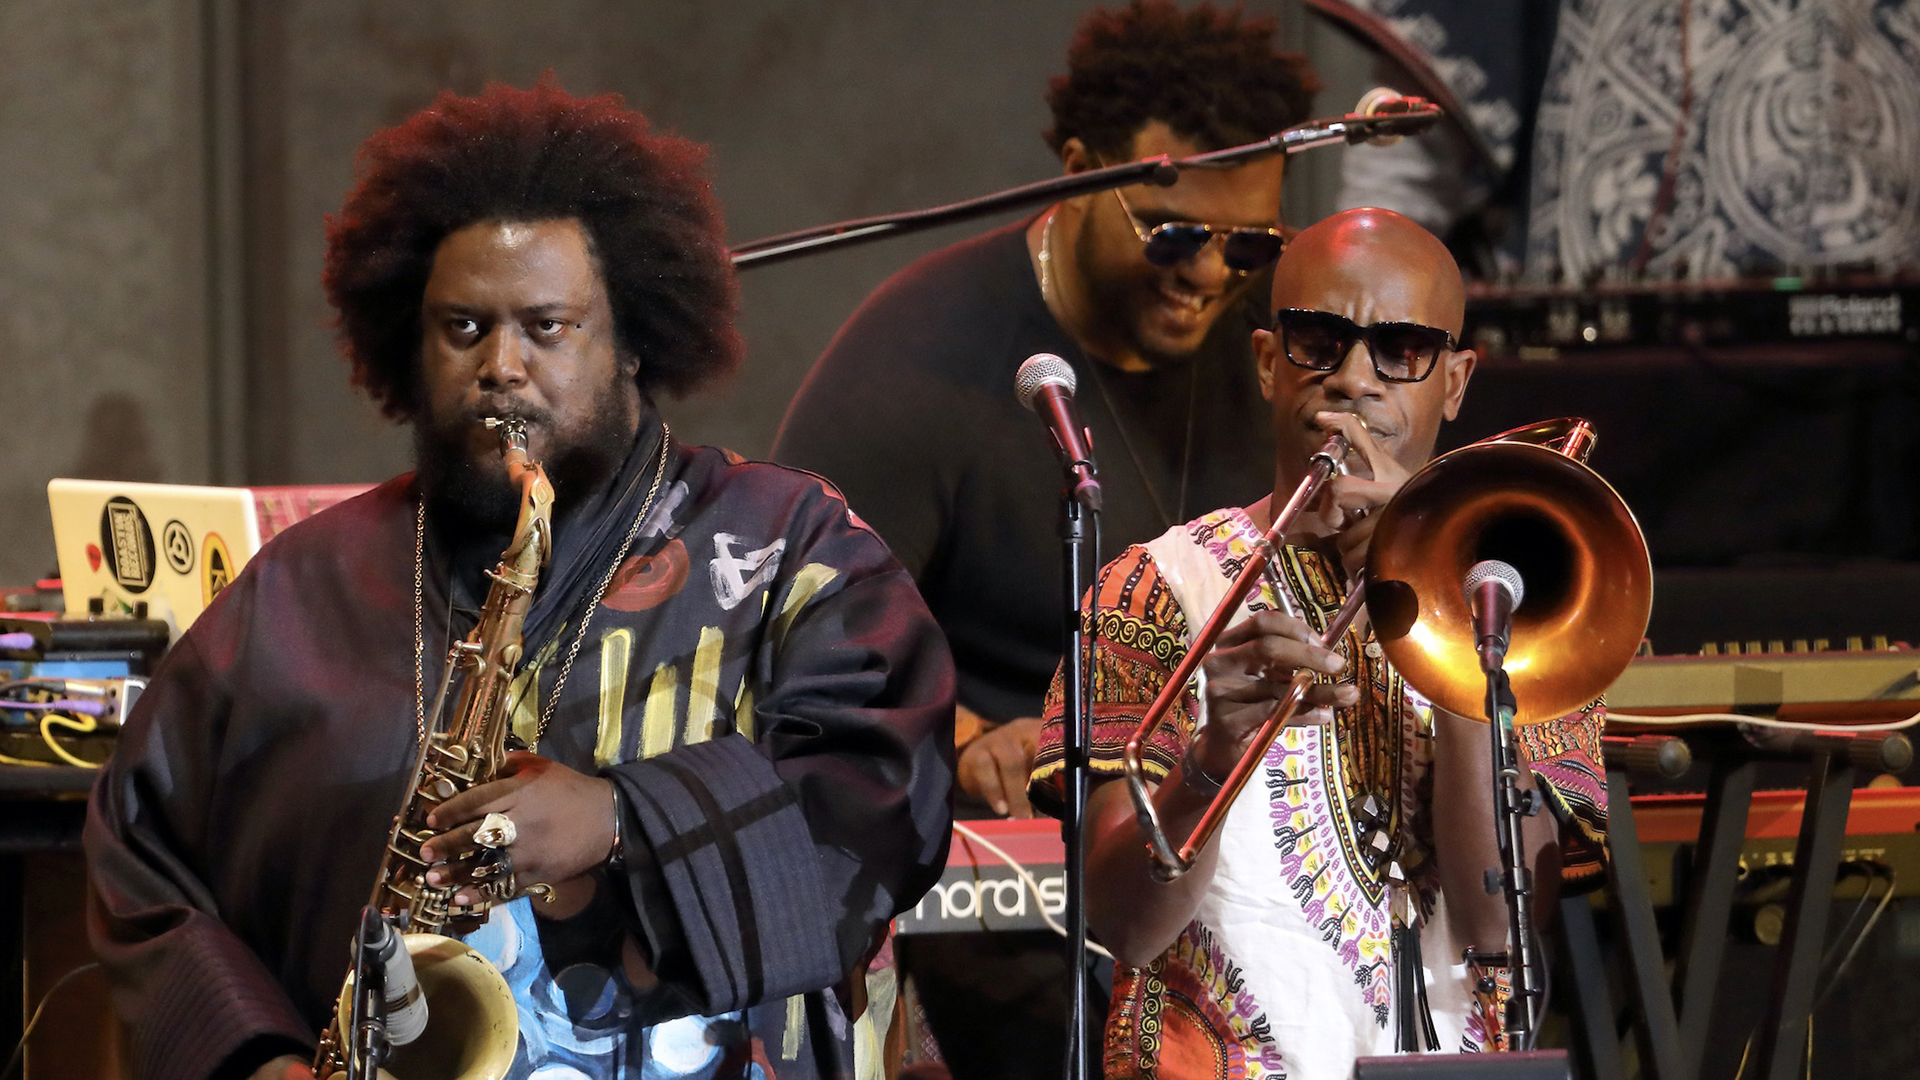 A man playing a saxophone stands on stage next to a man playing a trombone.